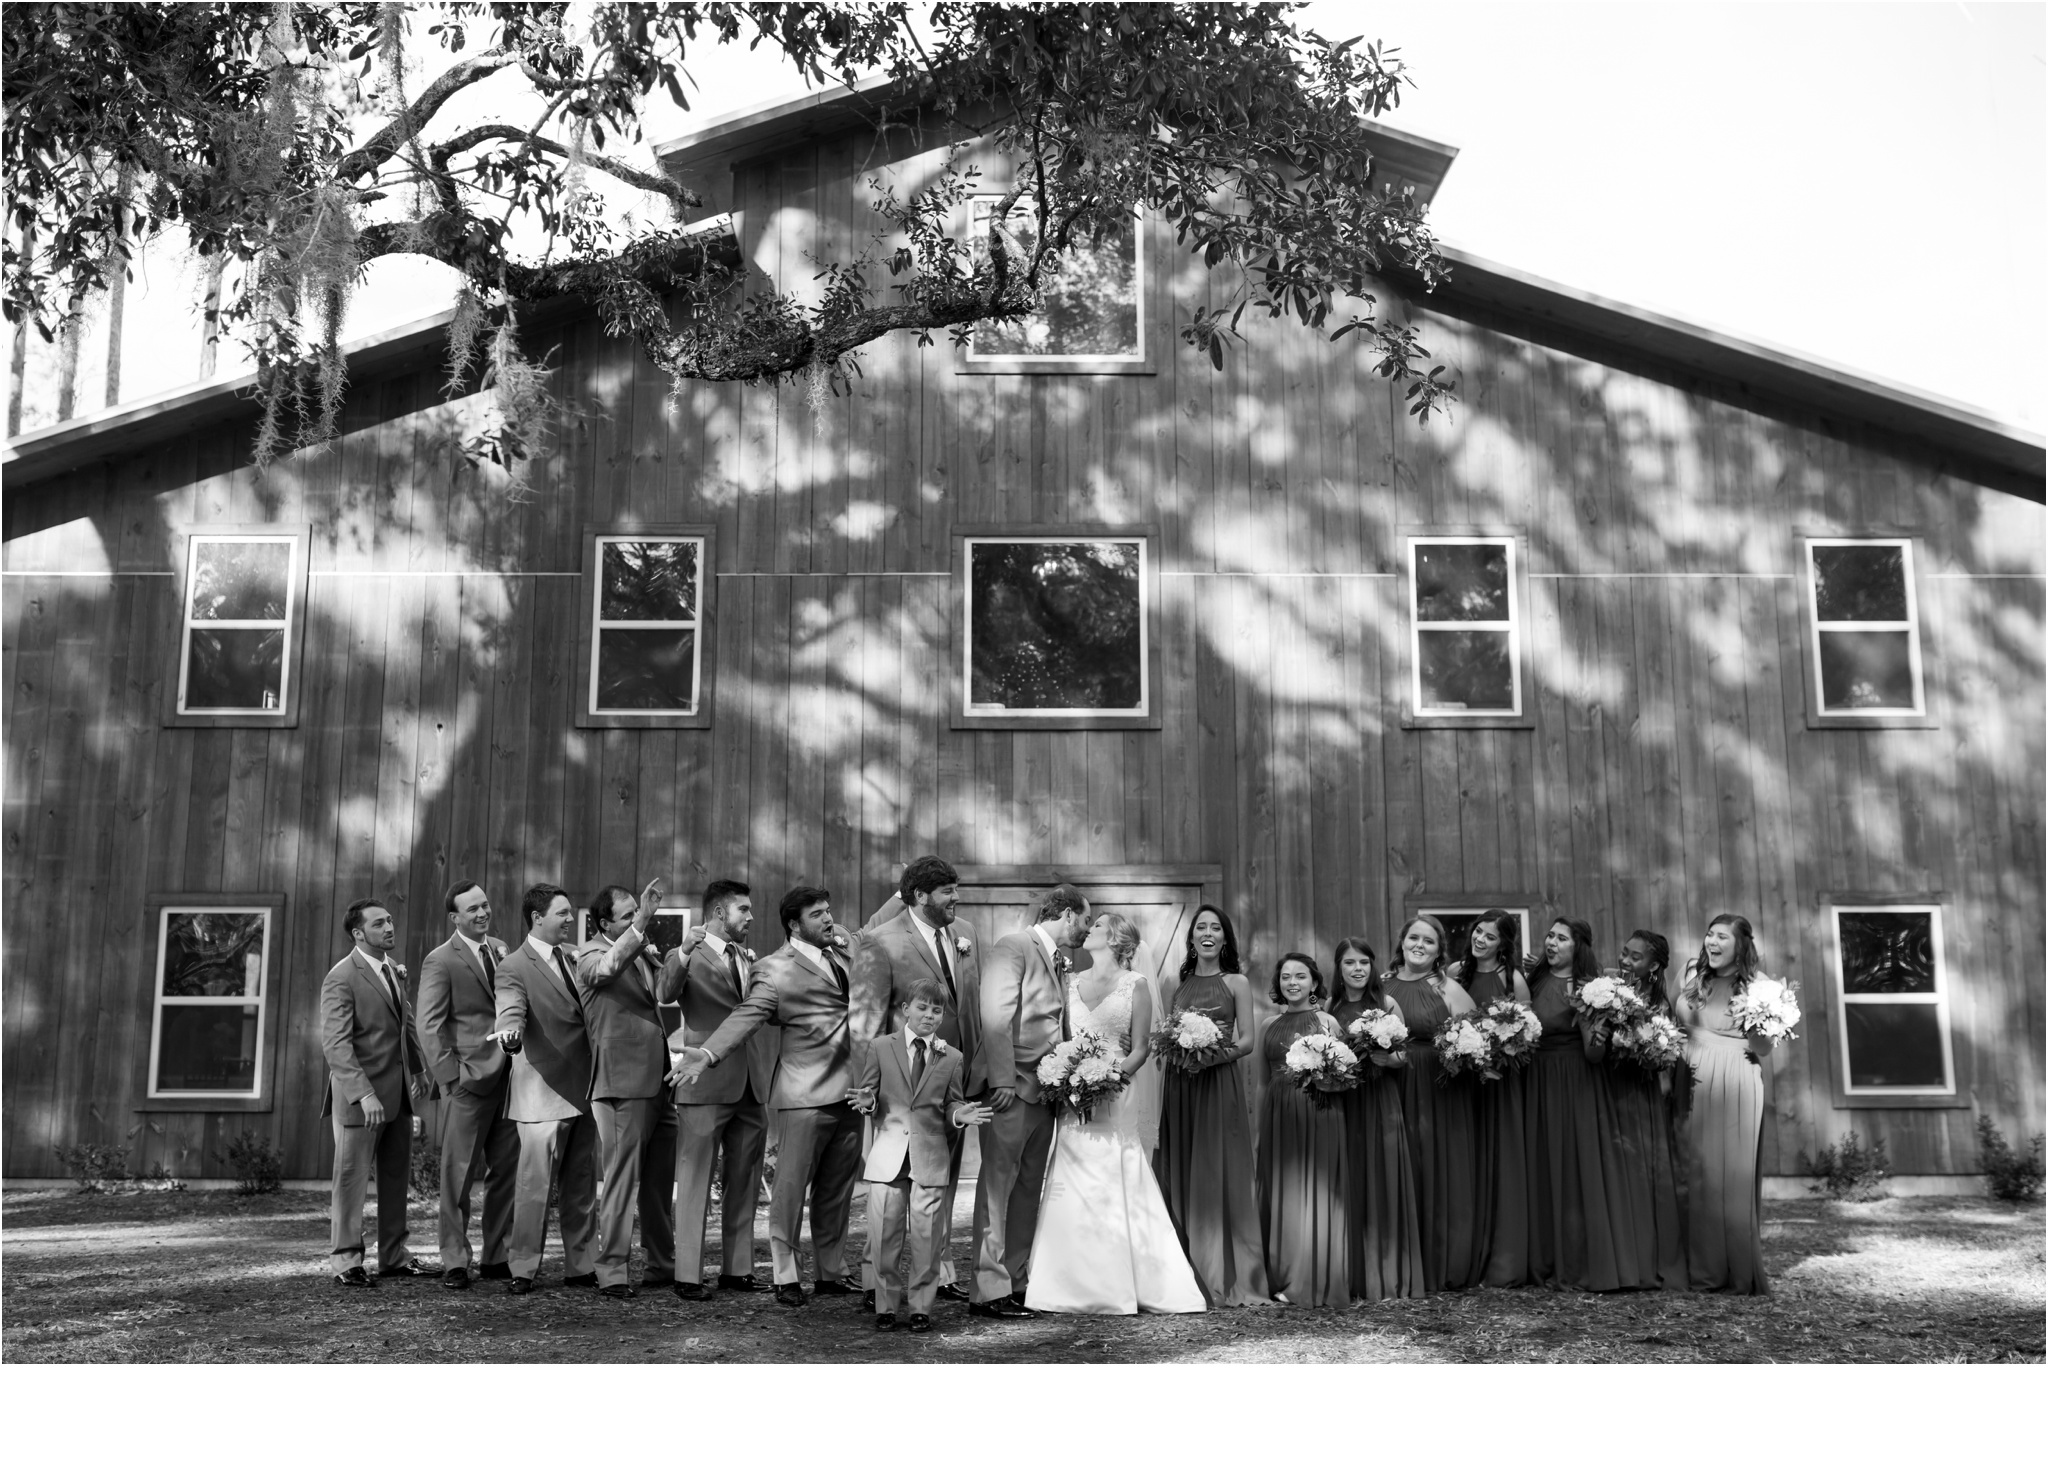 Rainey_Gregg_Photography_St._Simons_Island_Georgia_California_Wedding_Portrait_Photography_0513.jpg